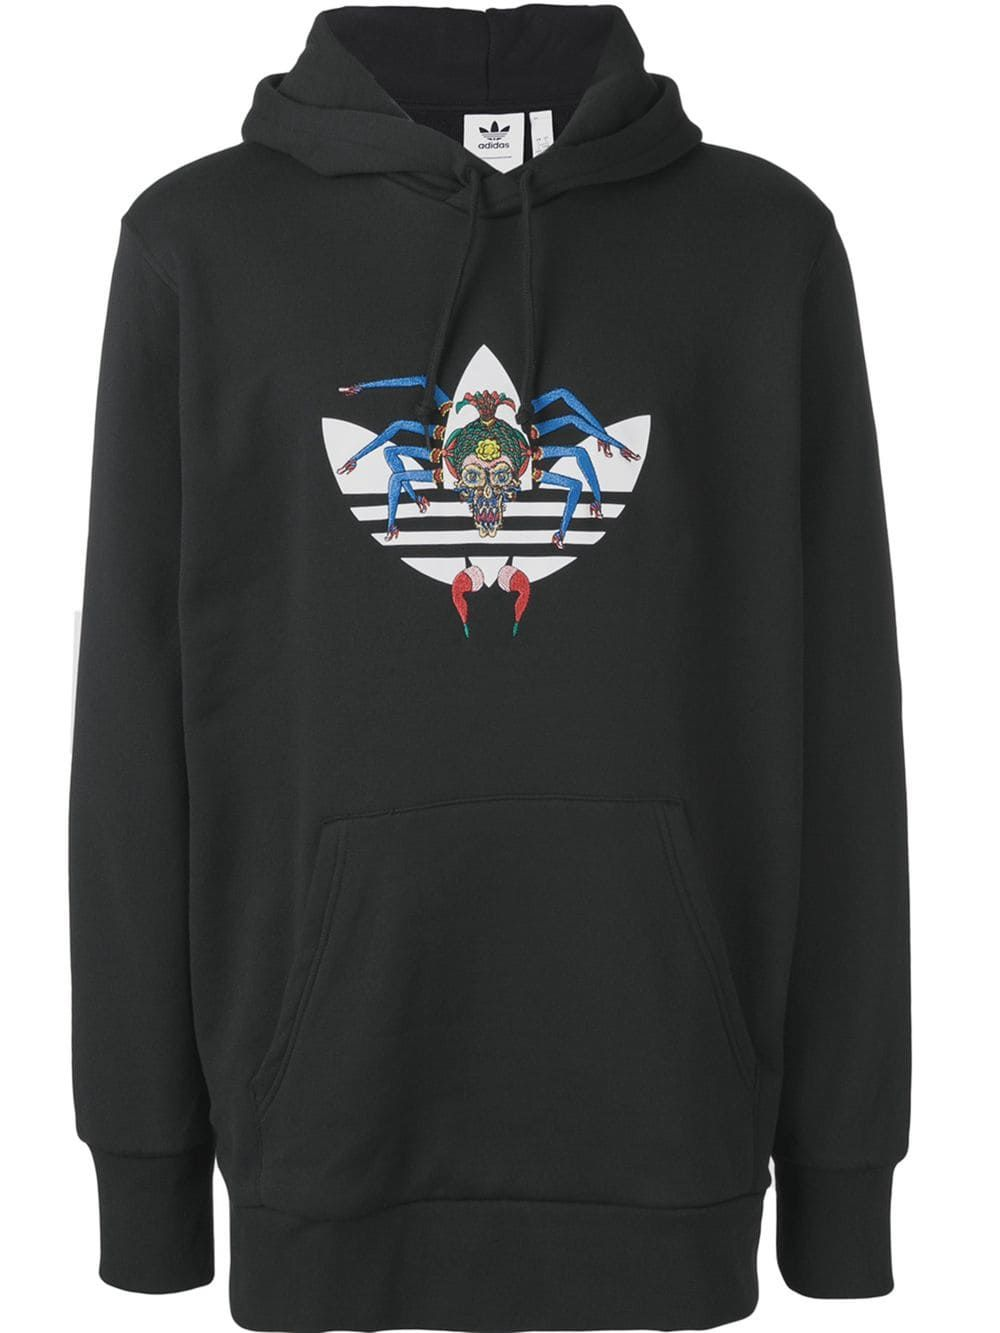 97881a99ae7e ADIDAS ORIGINALS ADIDAS TANAAMI HOODIE - SCHWARZ.  adidasoriginals  cloth Adidas  Originals Mens